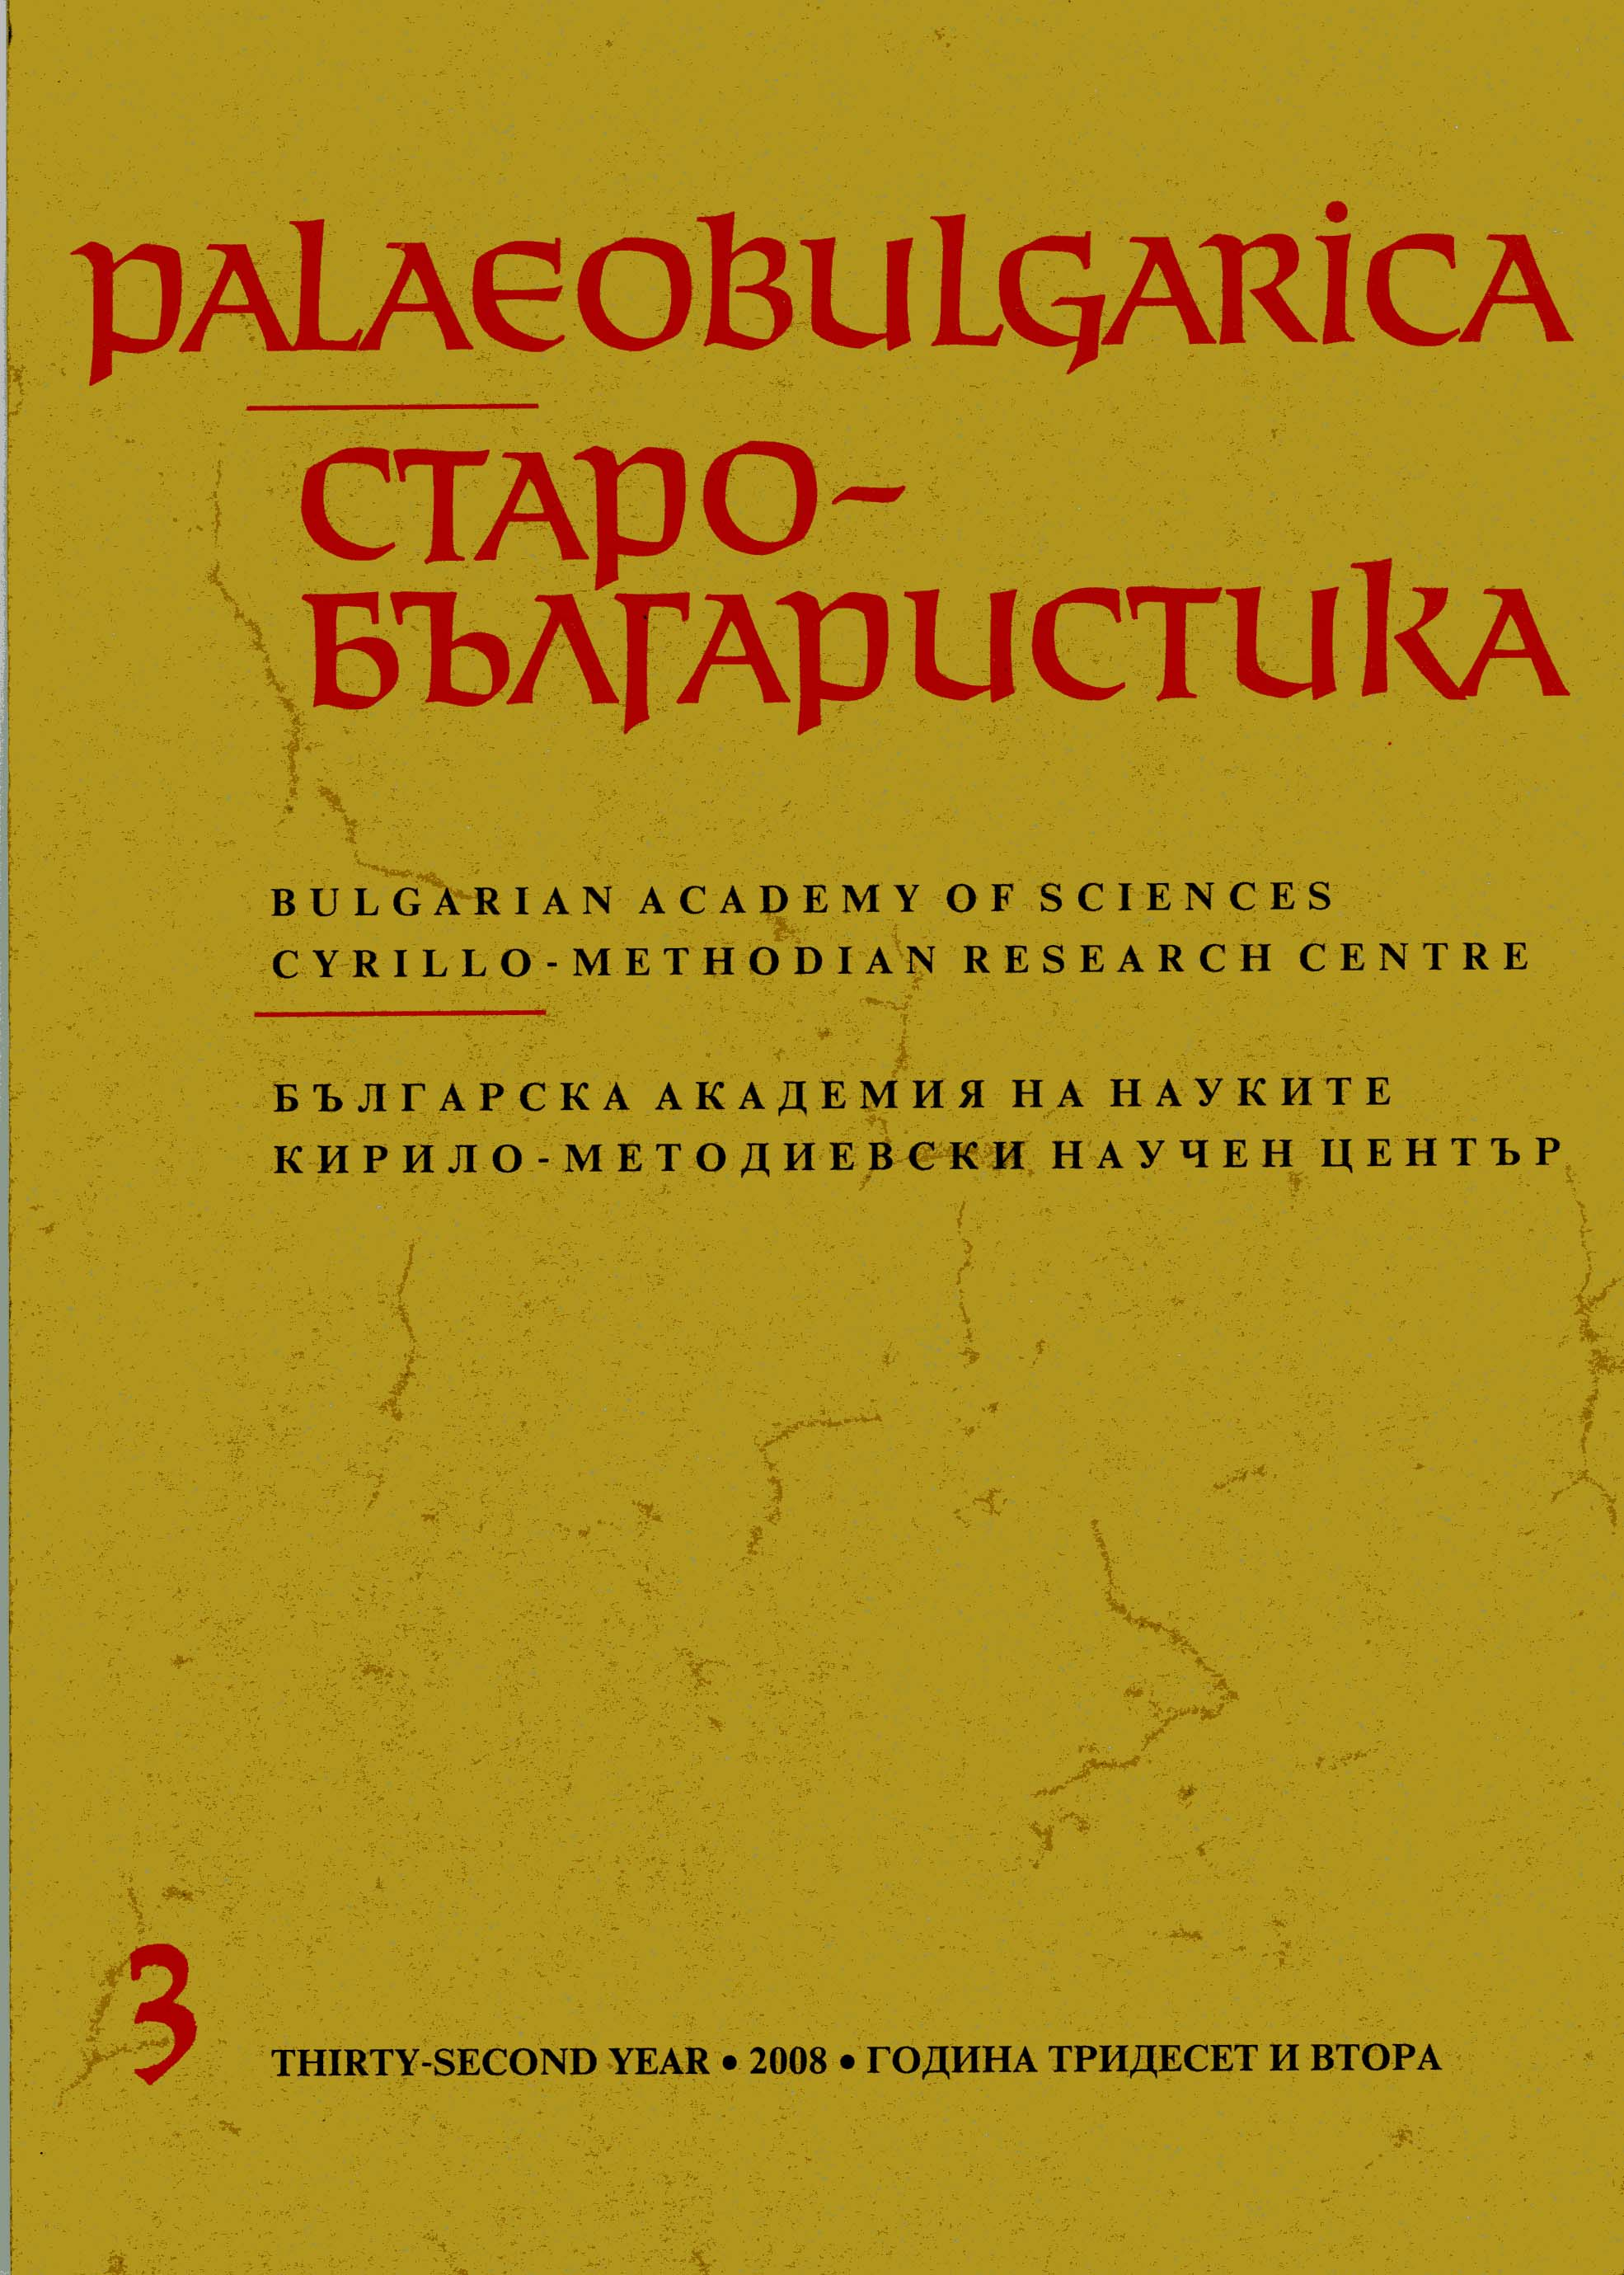 The Concept of the Pre-Christian Writing System and Literature of the Bulgarians in the Historical and Philological Concepts of G. S. Rakovski and Some of His Followers Cover Image